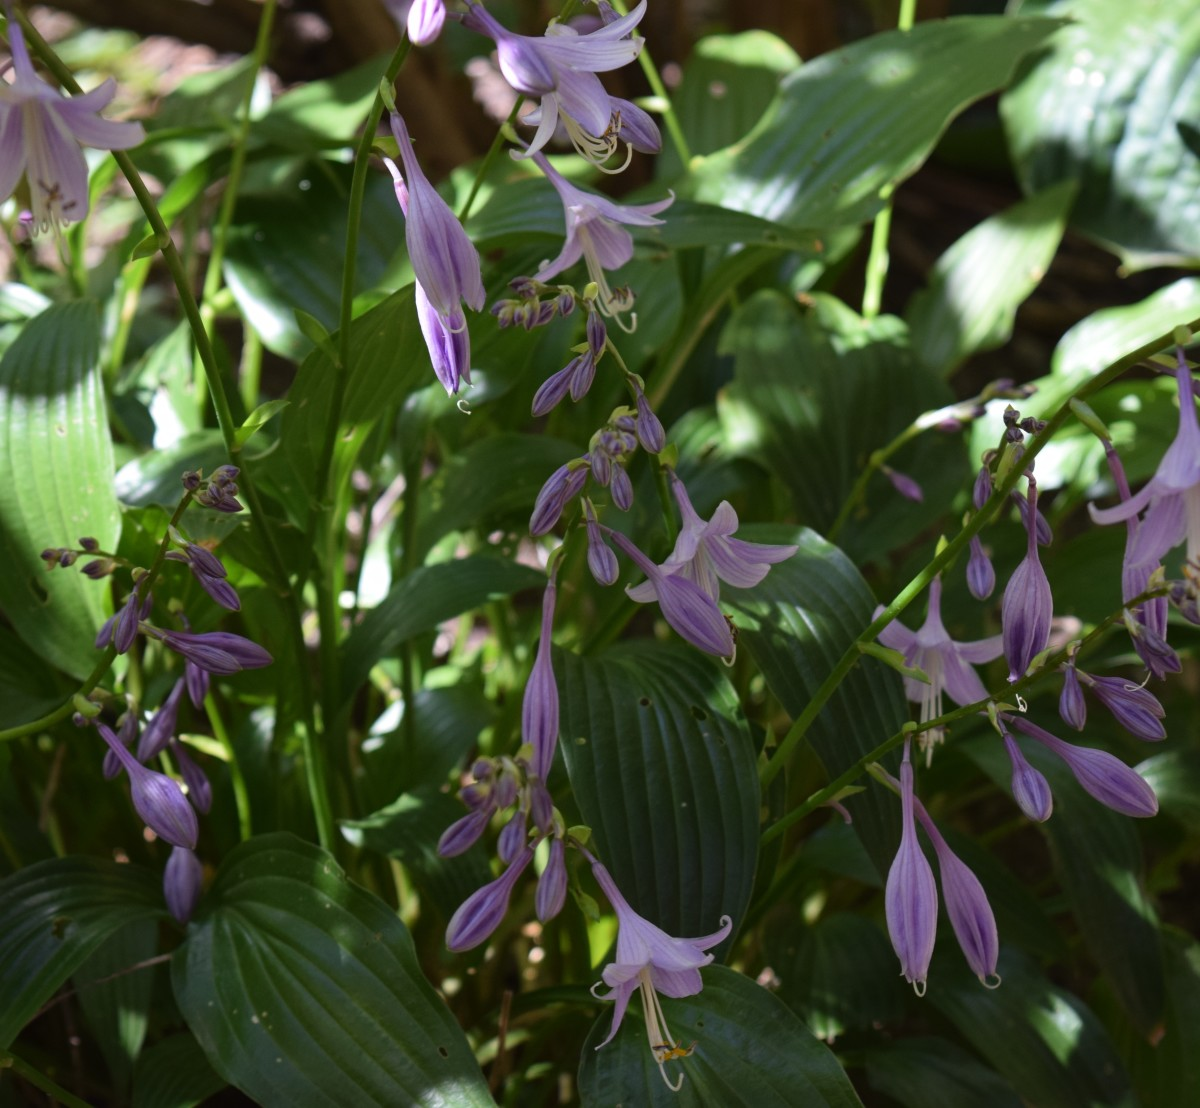 Late blooming Hosta benefits from last fall's compost.